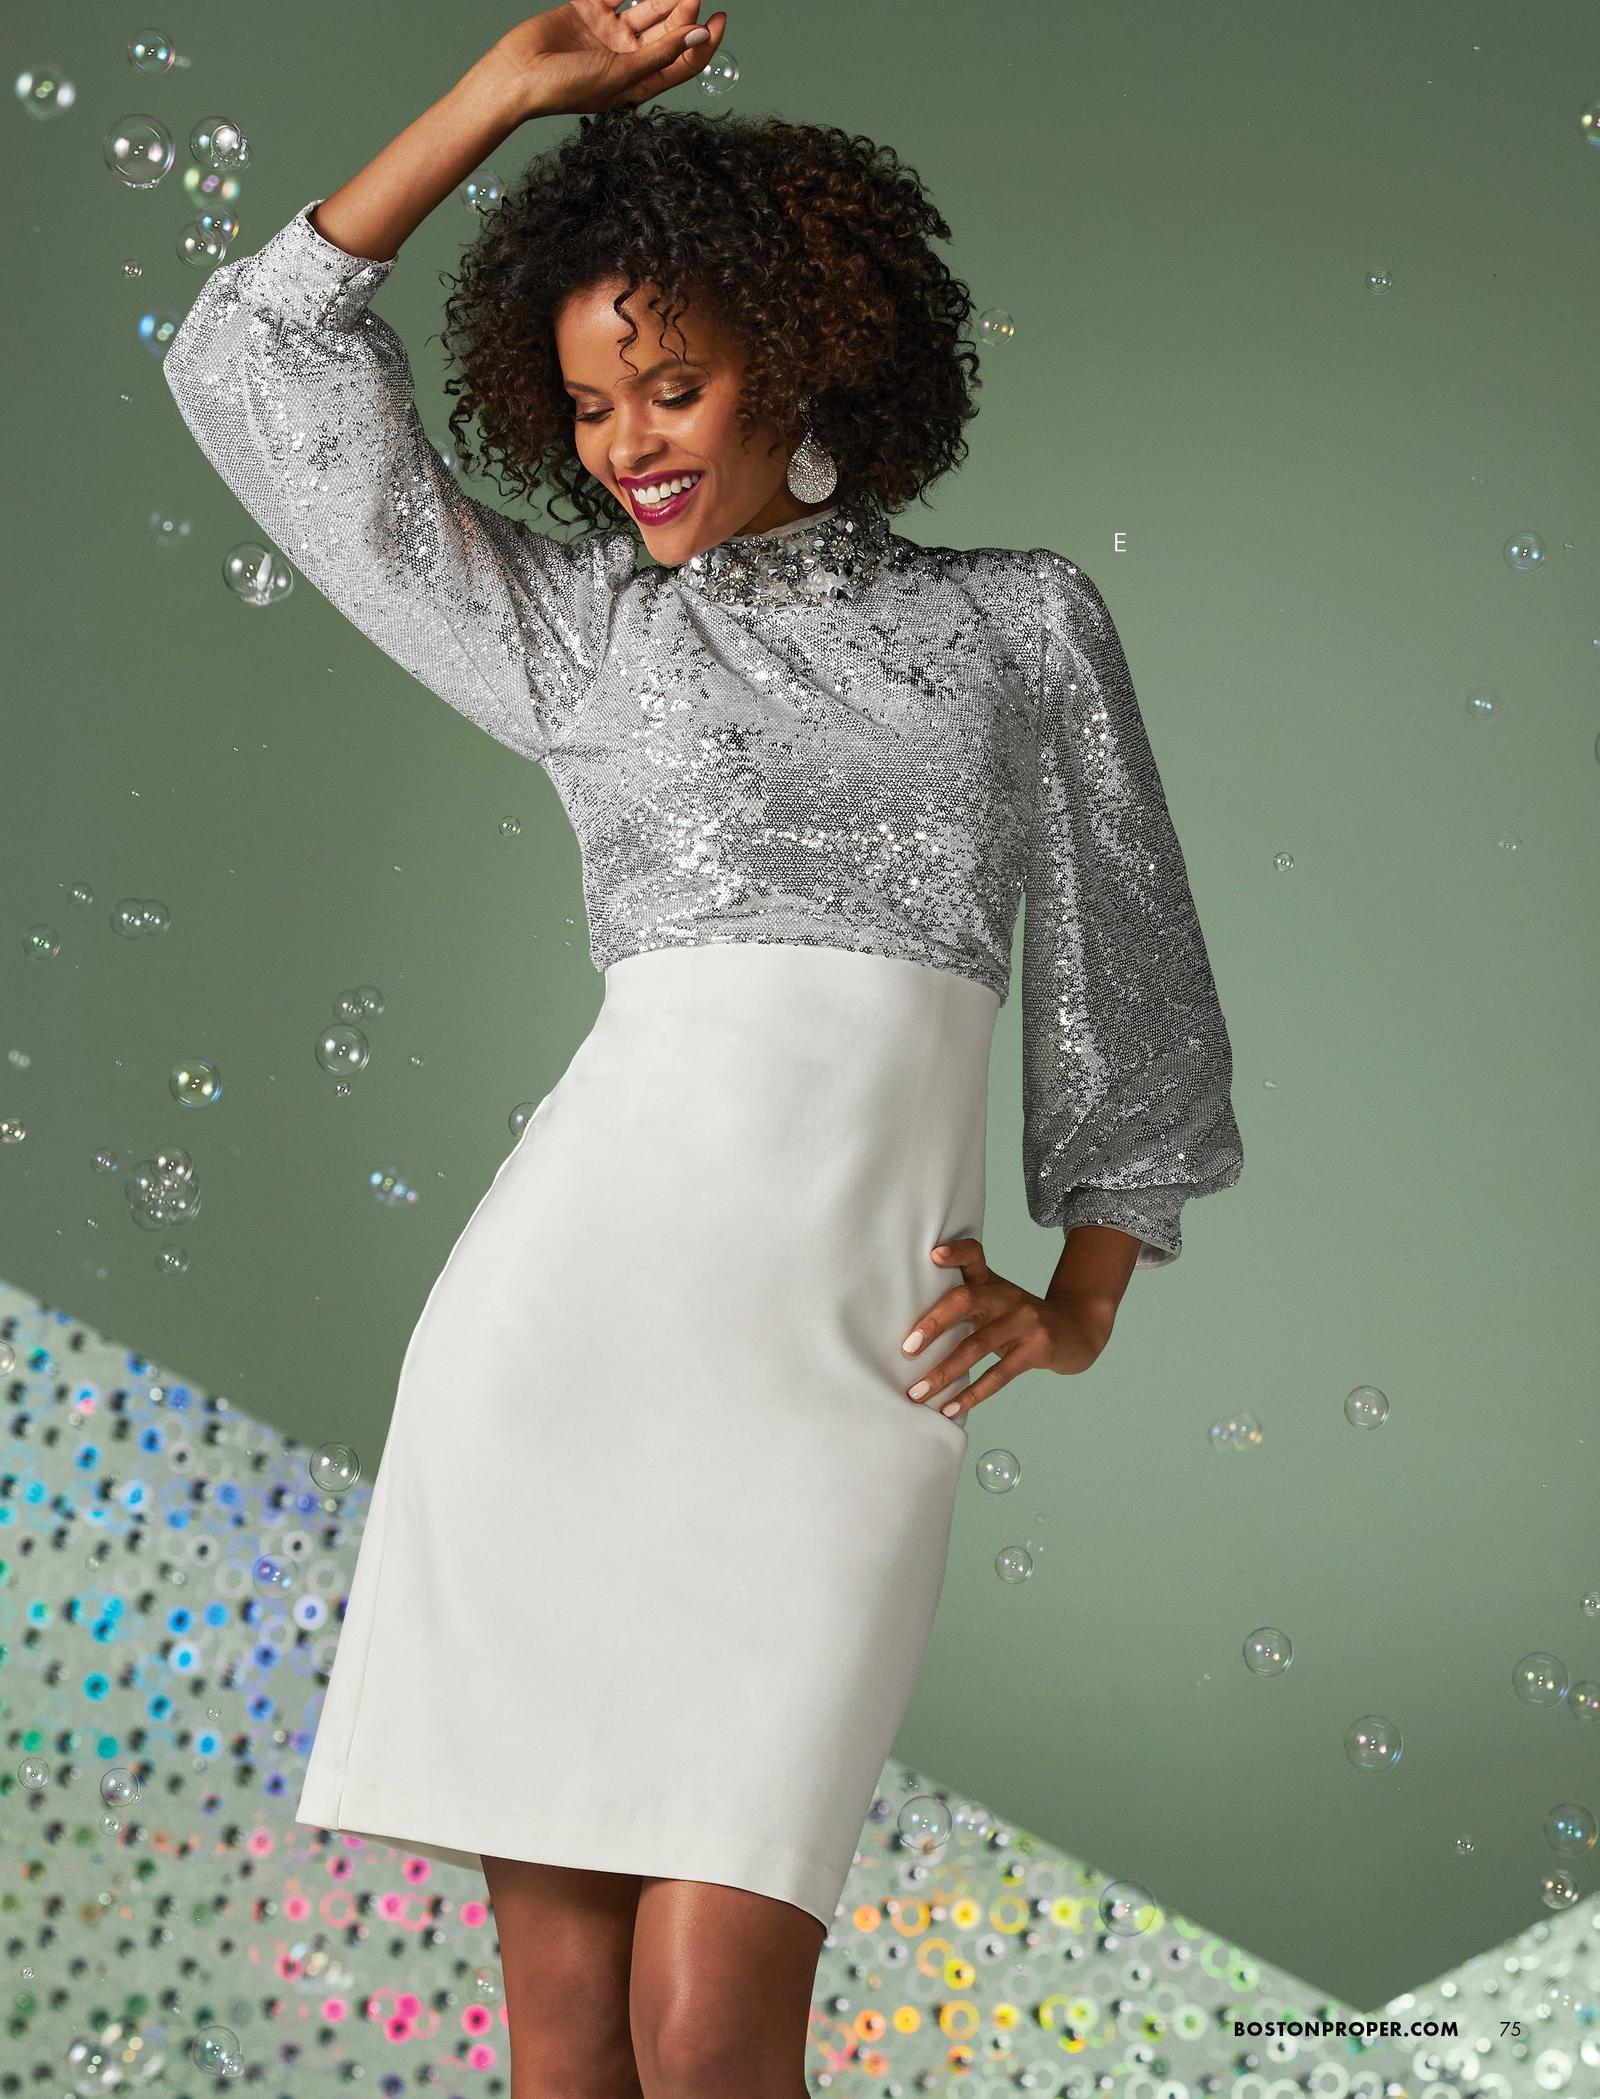 model wearing a silver sequin long-sleeve dress with a white skirted bottom.